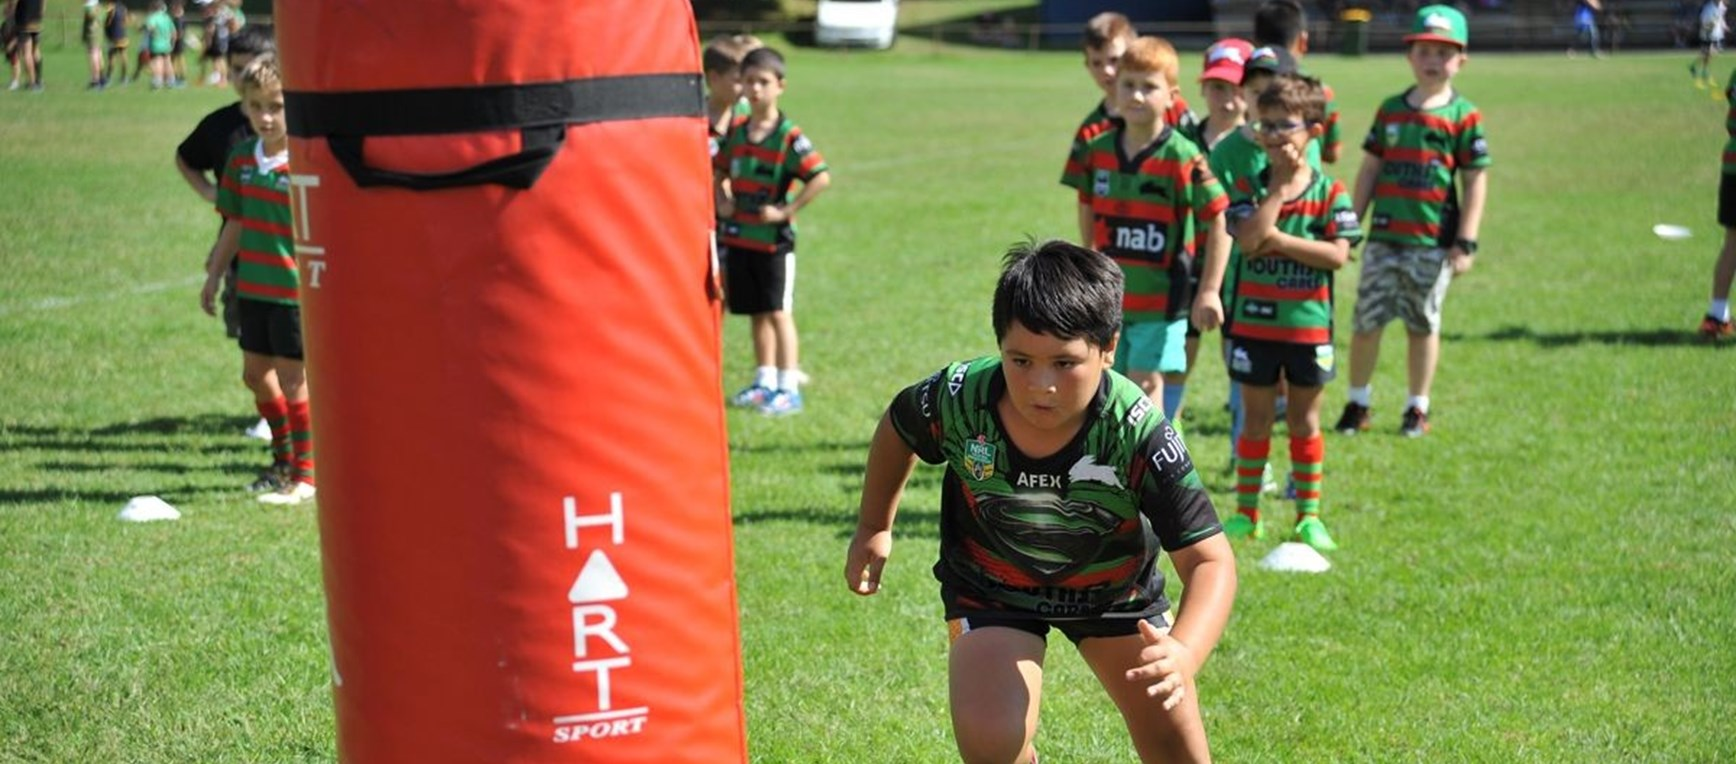 GALLERY: Rabbitohs 2015 Holiday Clinic